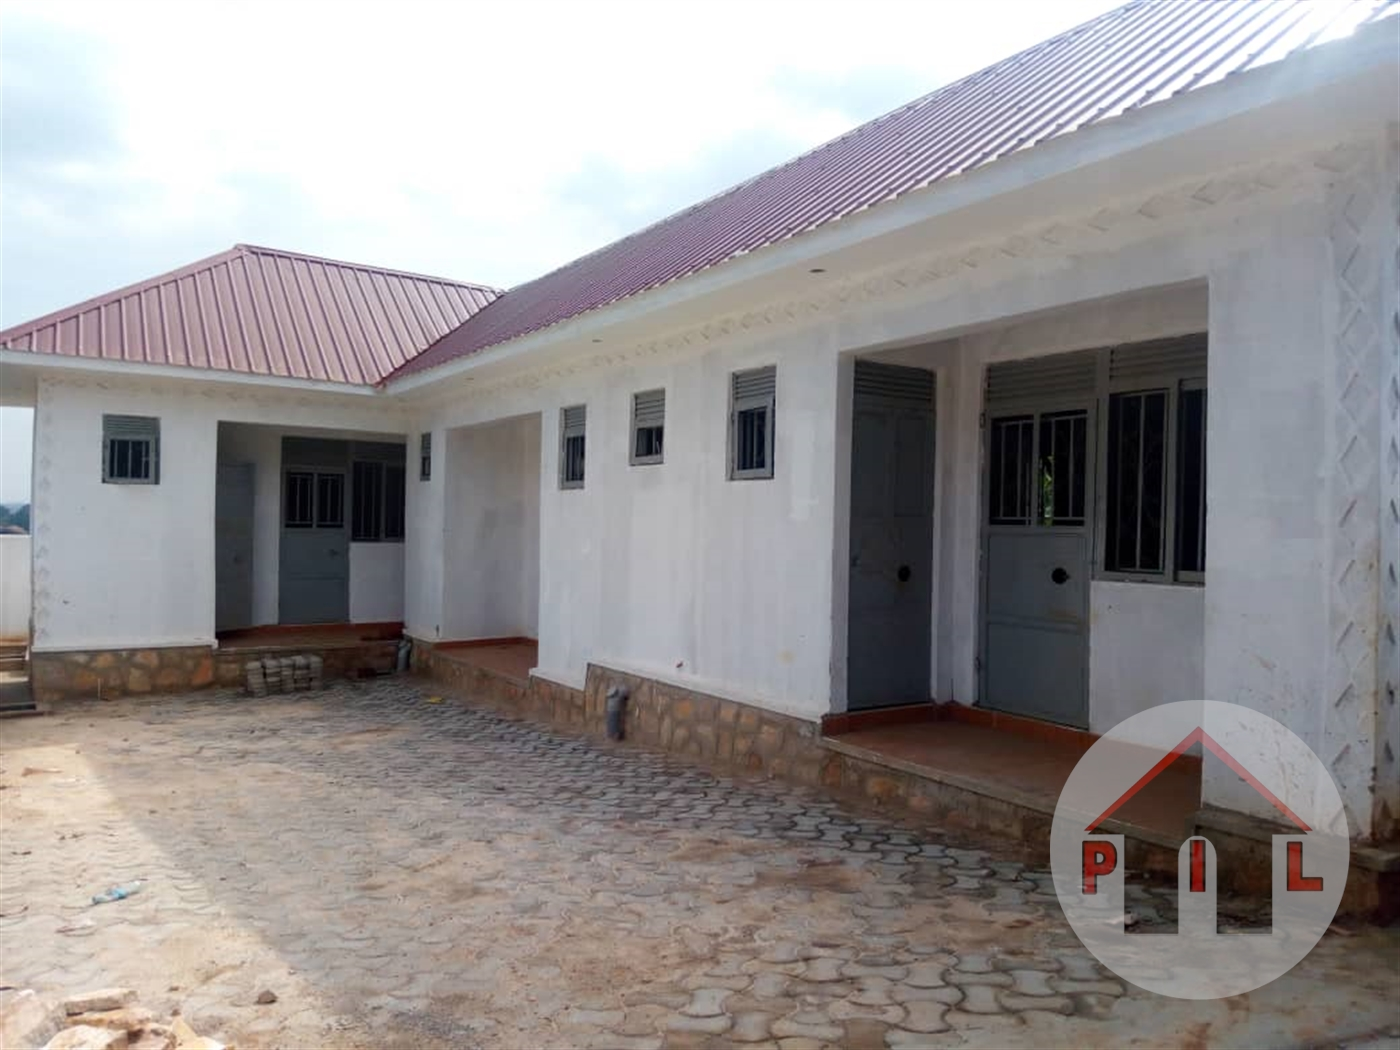 Rental units for sale in Namugongo Wakiso